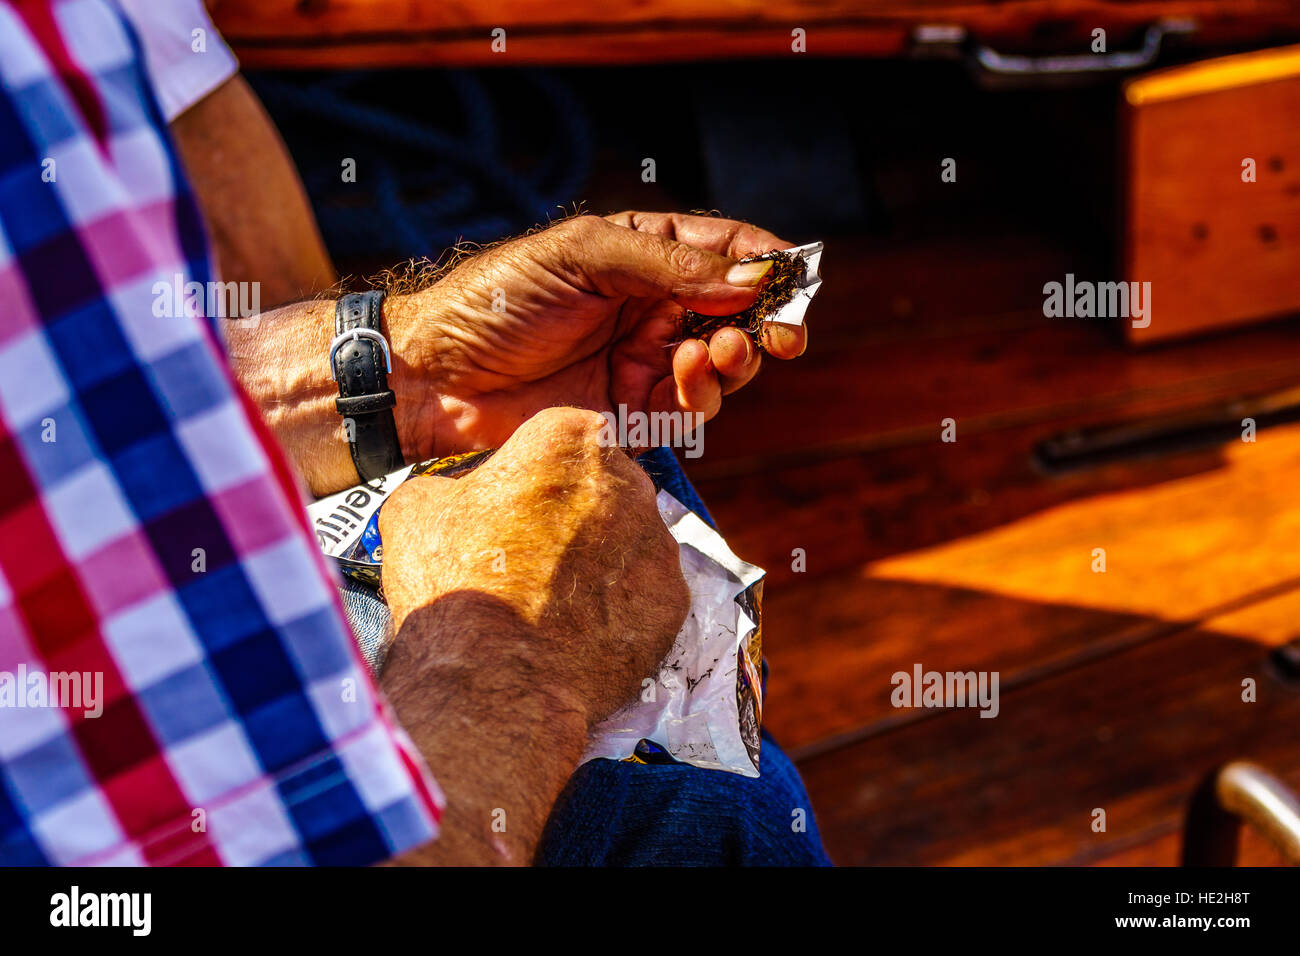 Sailor Rolling a Cigarette on during a Bot Ride on a wooden Botter Boat on the Veluwemeer in the Netherlands - Stock Image